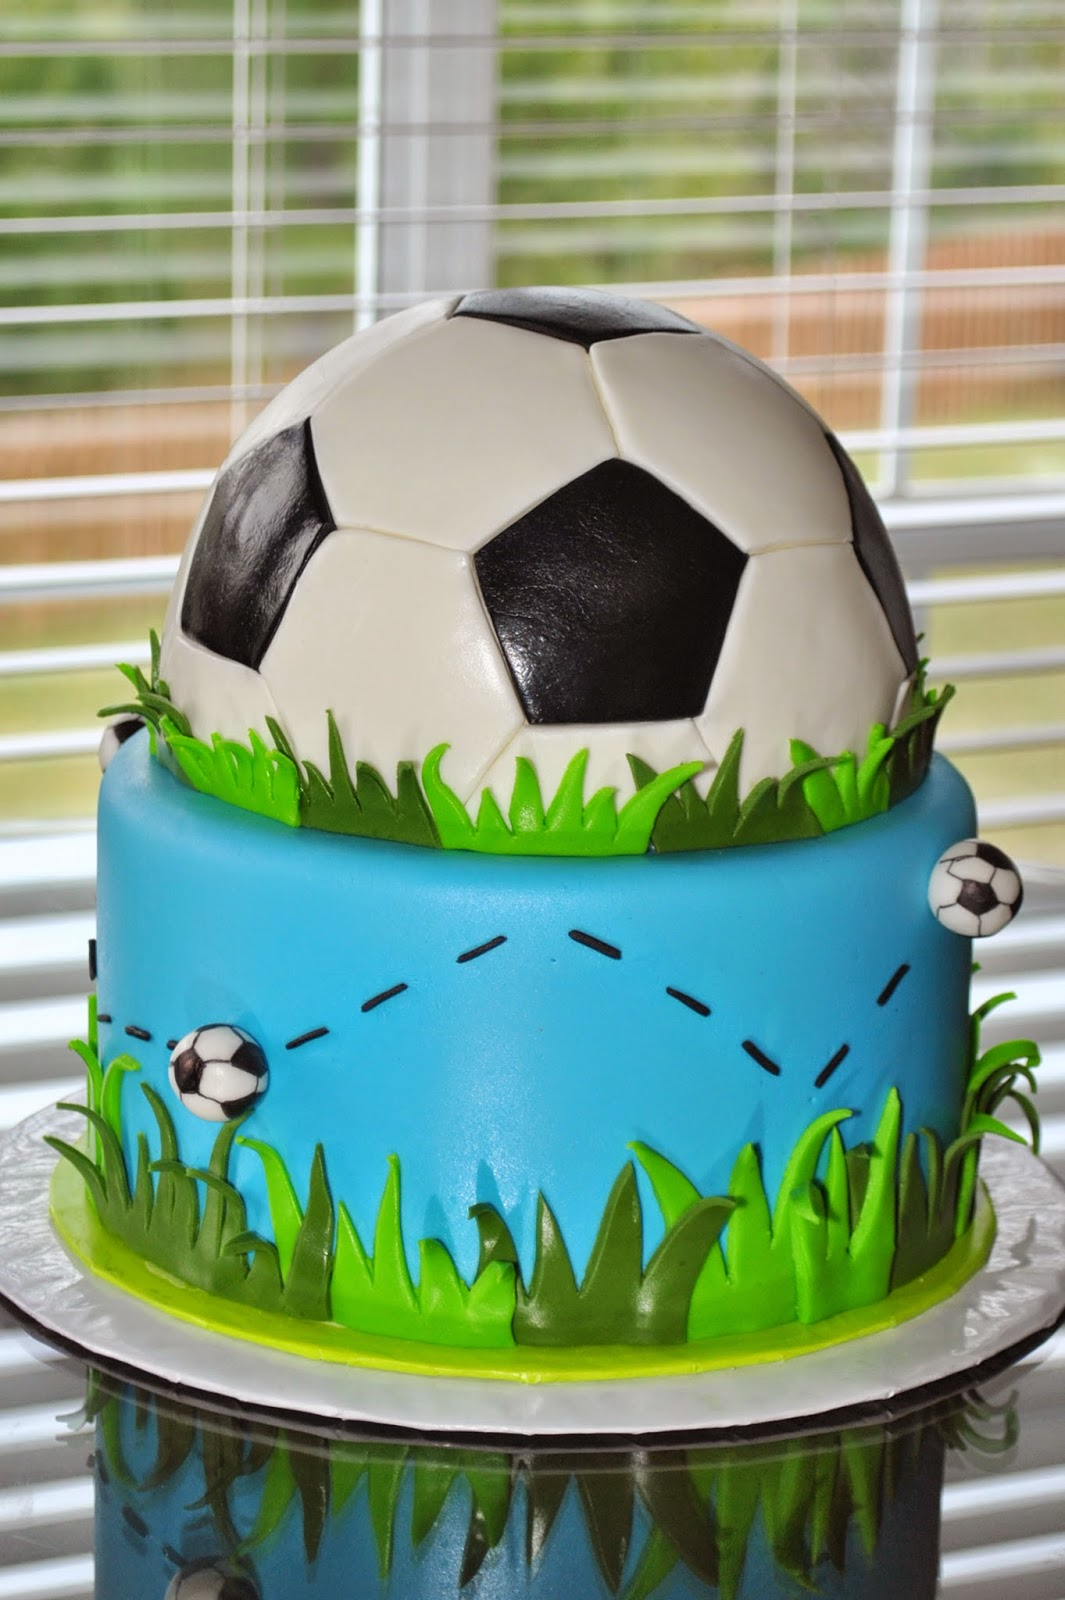 soccer cake ideas s sweet cakes sports cakes 7581